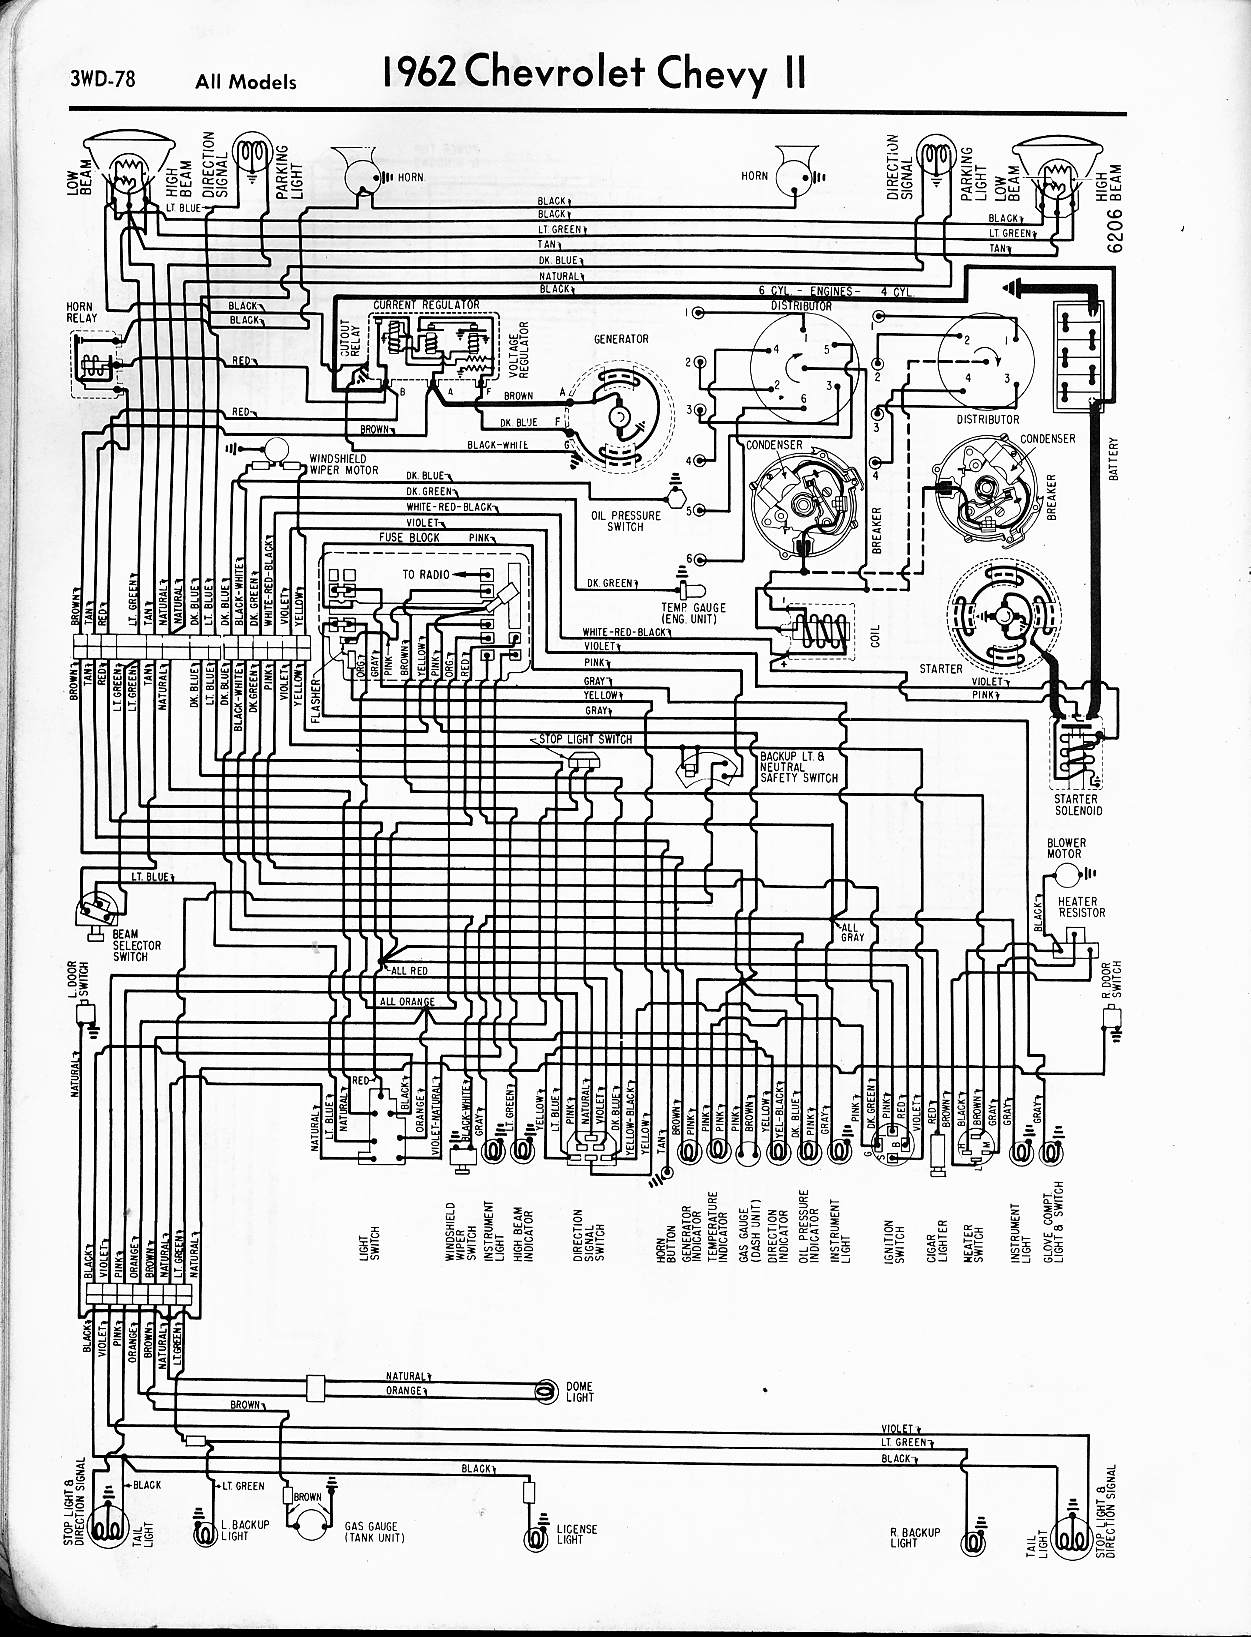 57 65 chevy wiring diagrams on 1968 Camaro Wiring Diagram Chevy TBI Wiring Harness for 1962 chevy ii (all models)